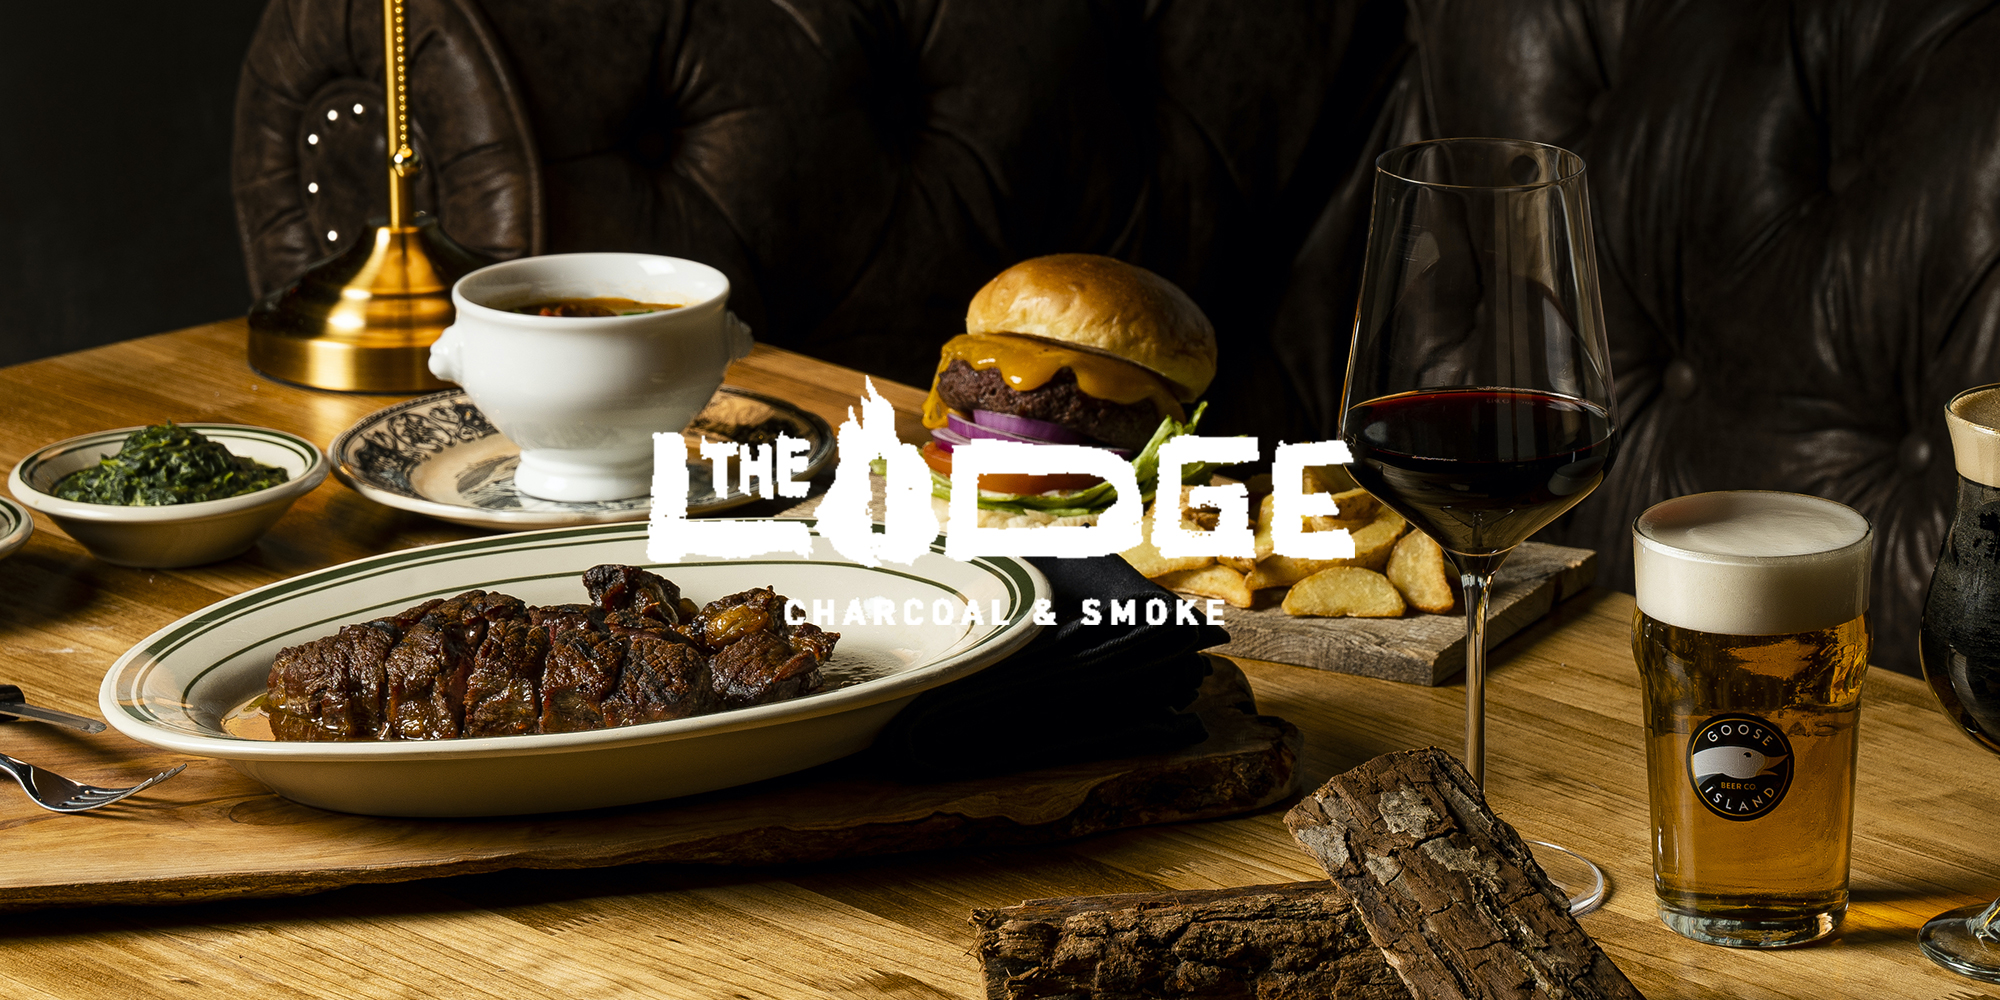 THE LODGE CHACOAL&SMOKE